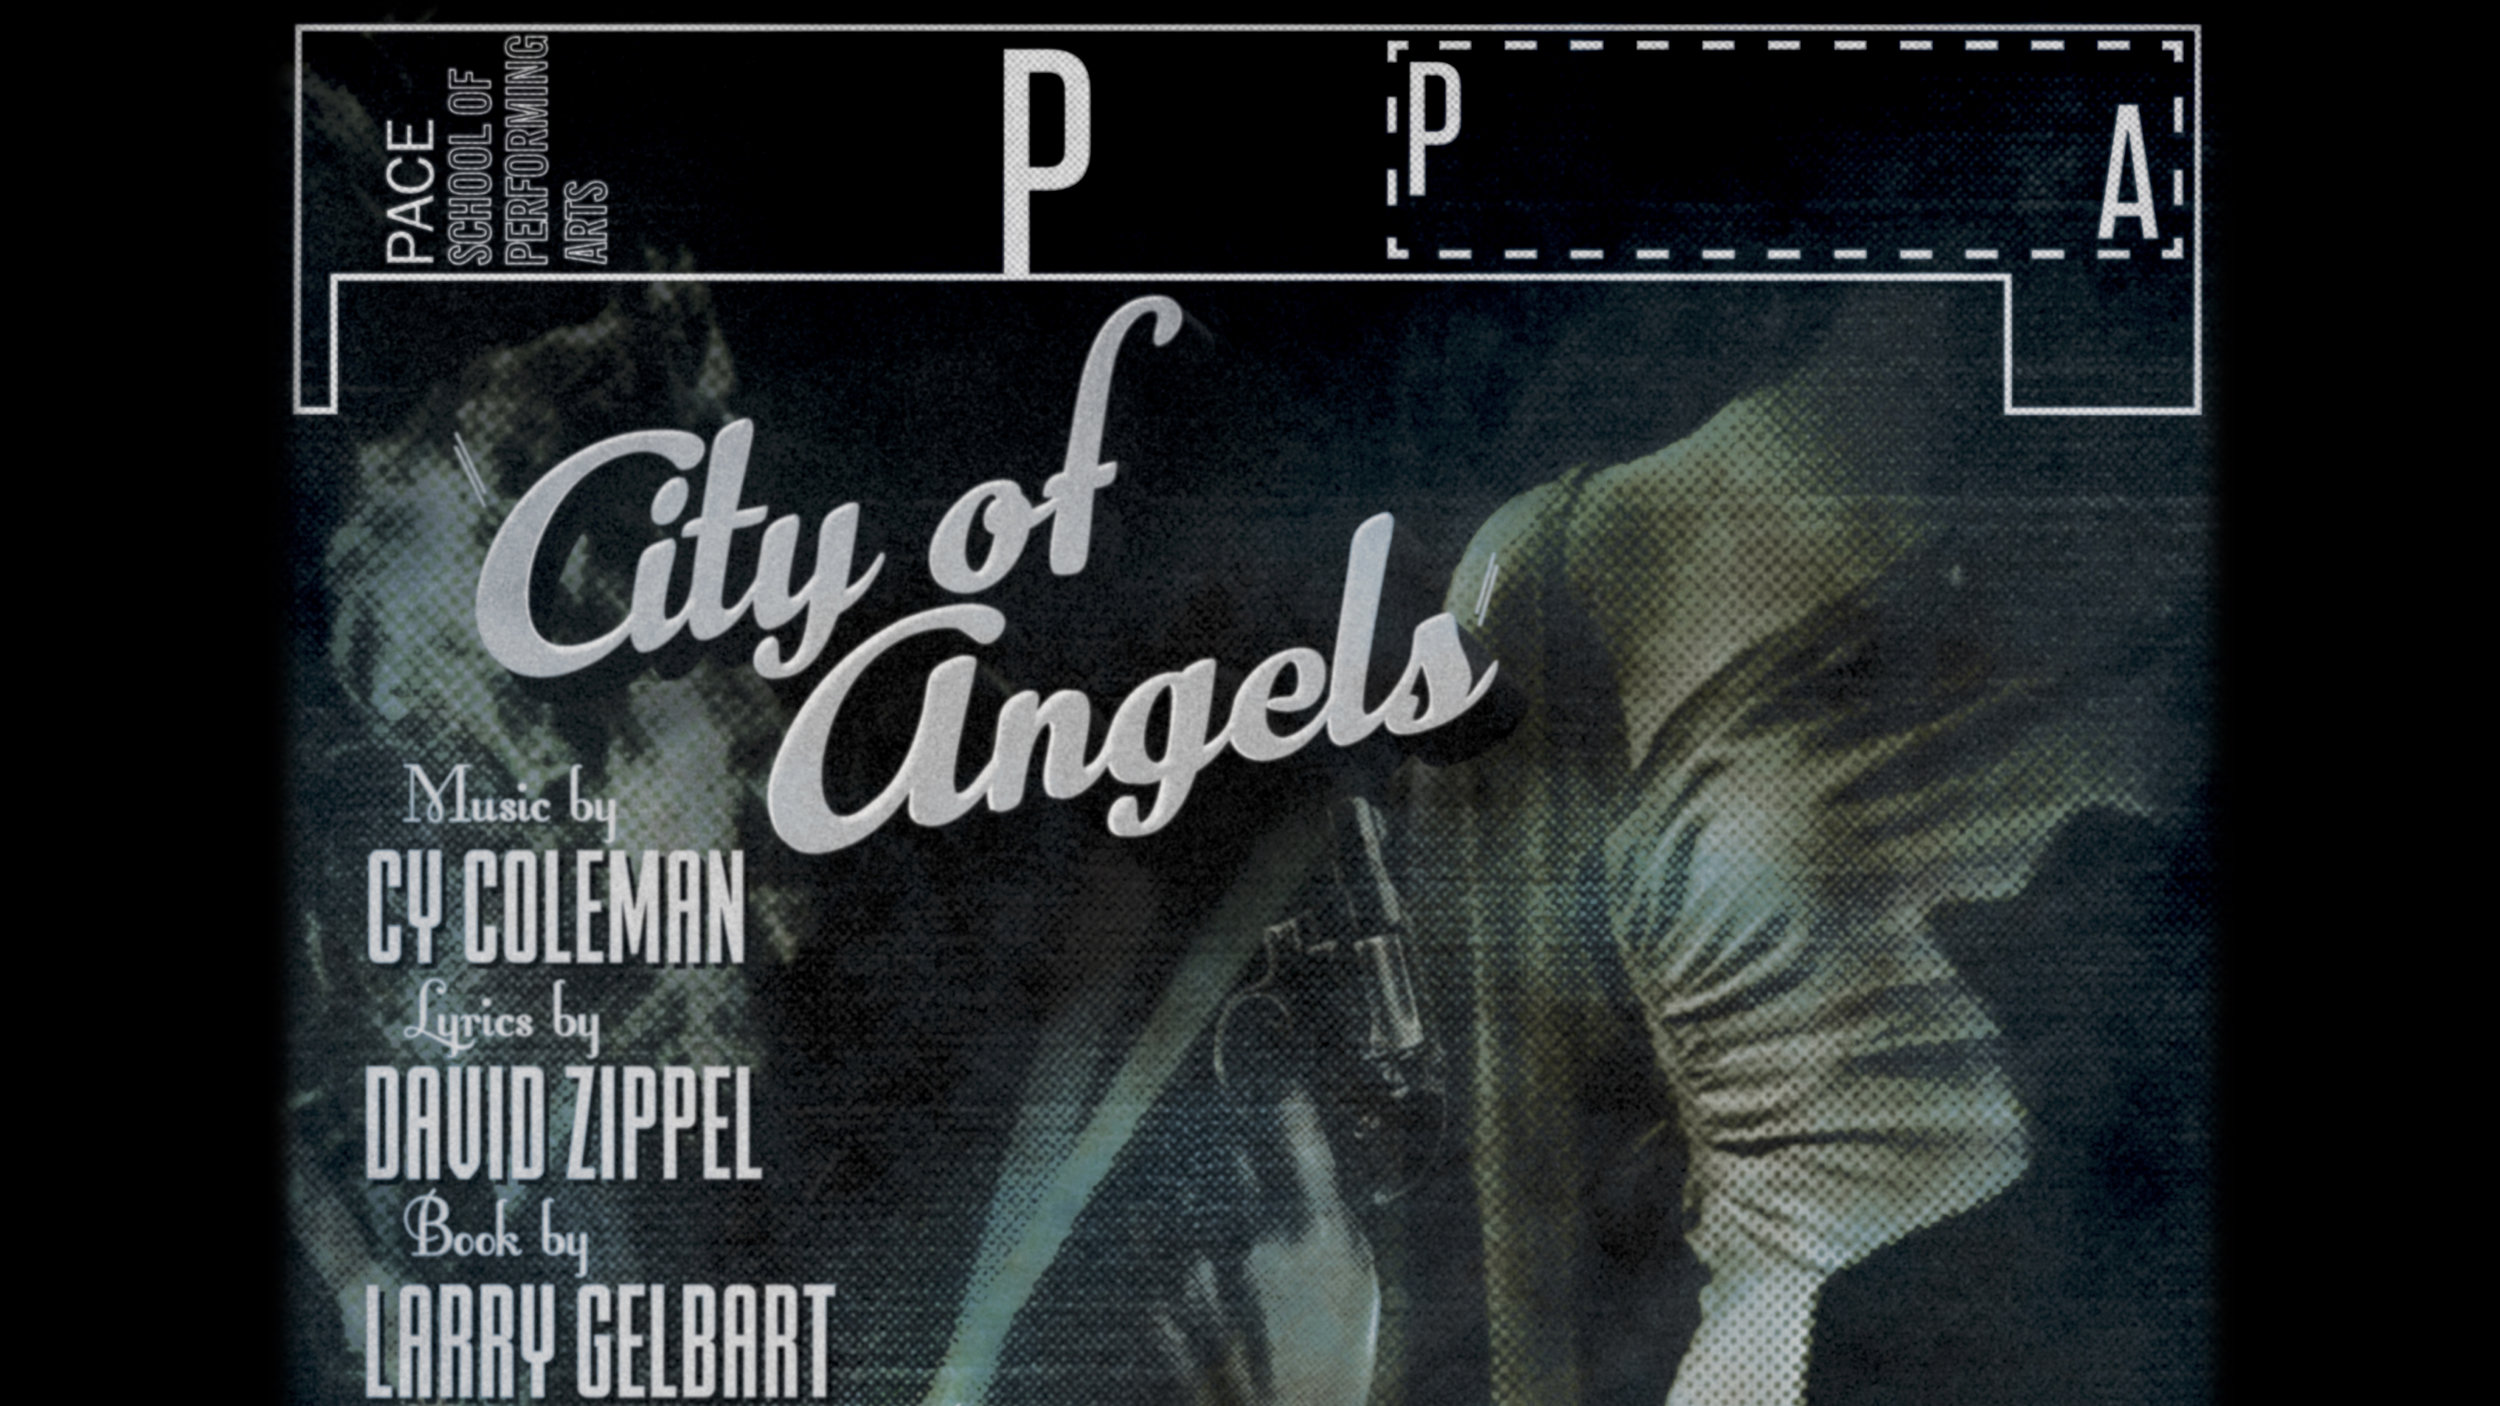 City of Angels - Music by Cy Coleman, Lyrics by David Zippel, Book by Larry GelbartAssistant Musical DirectorDecember 2–10, 2017Schaeberle Studio Theatre, Pace School of Performing Arts